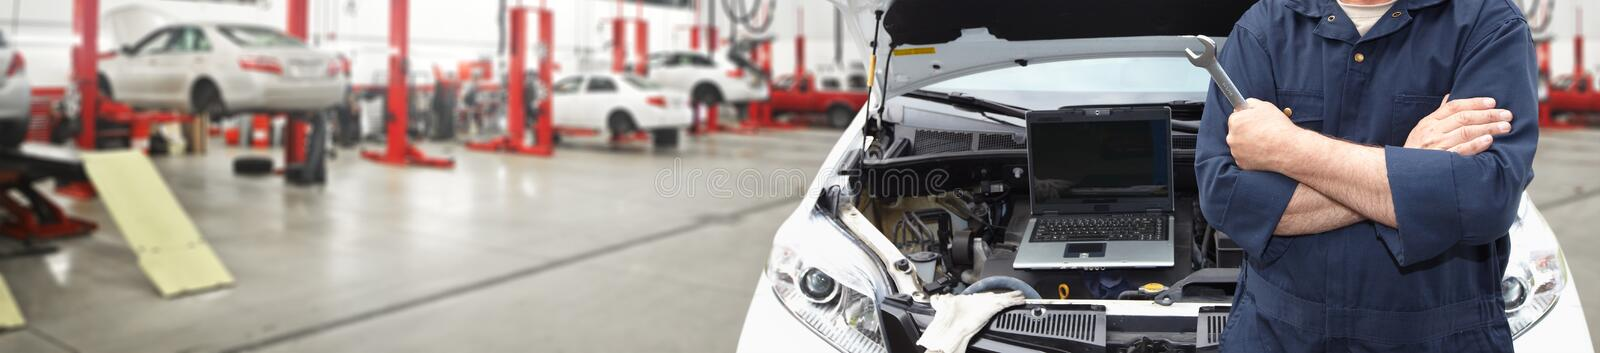 Hands of car mechanic with wrench in garage. Hands of car mechanic with wrench in auto repair service royalty free stock images